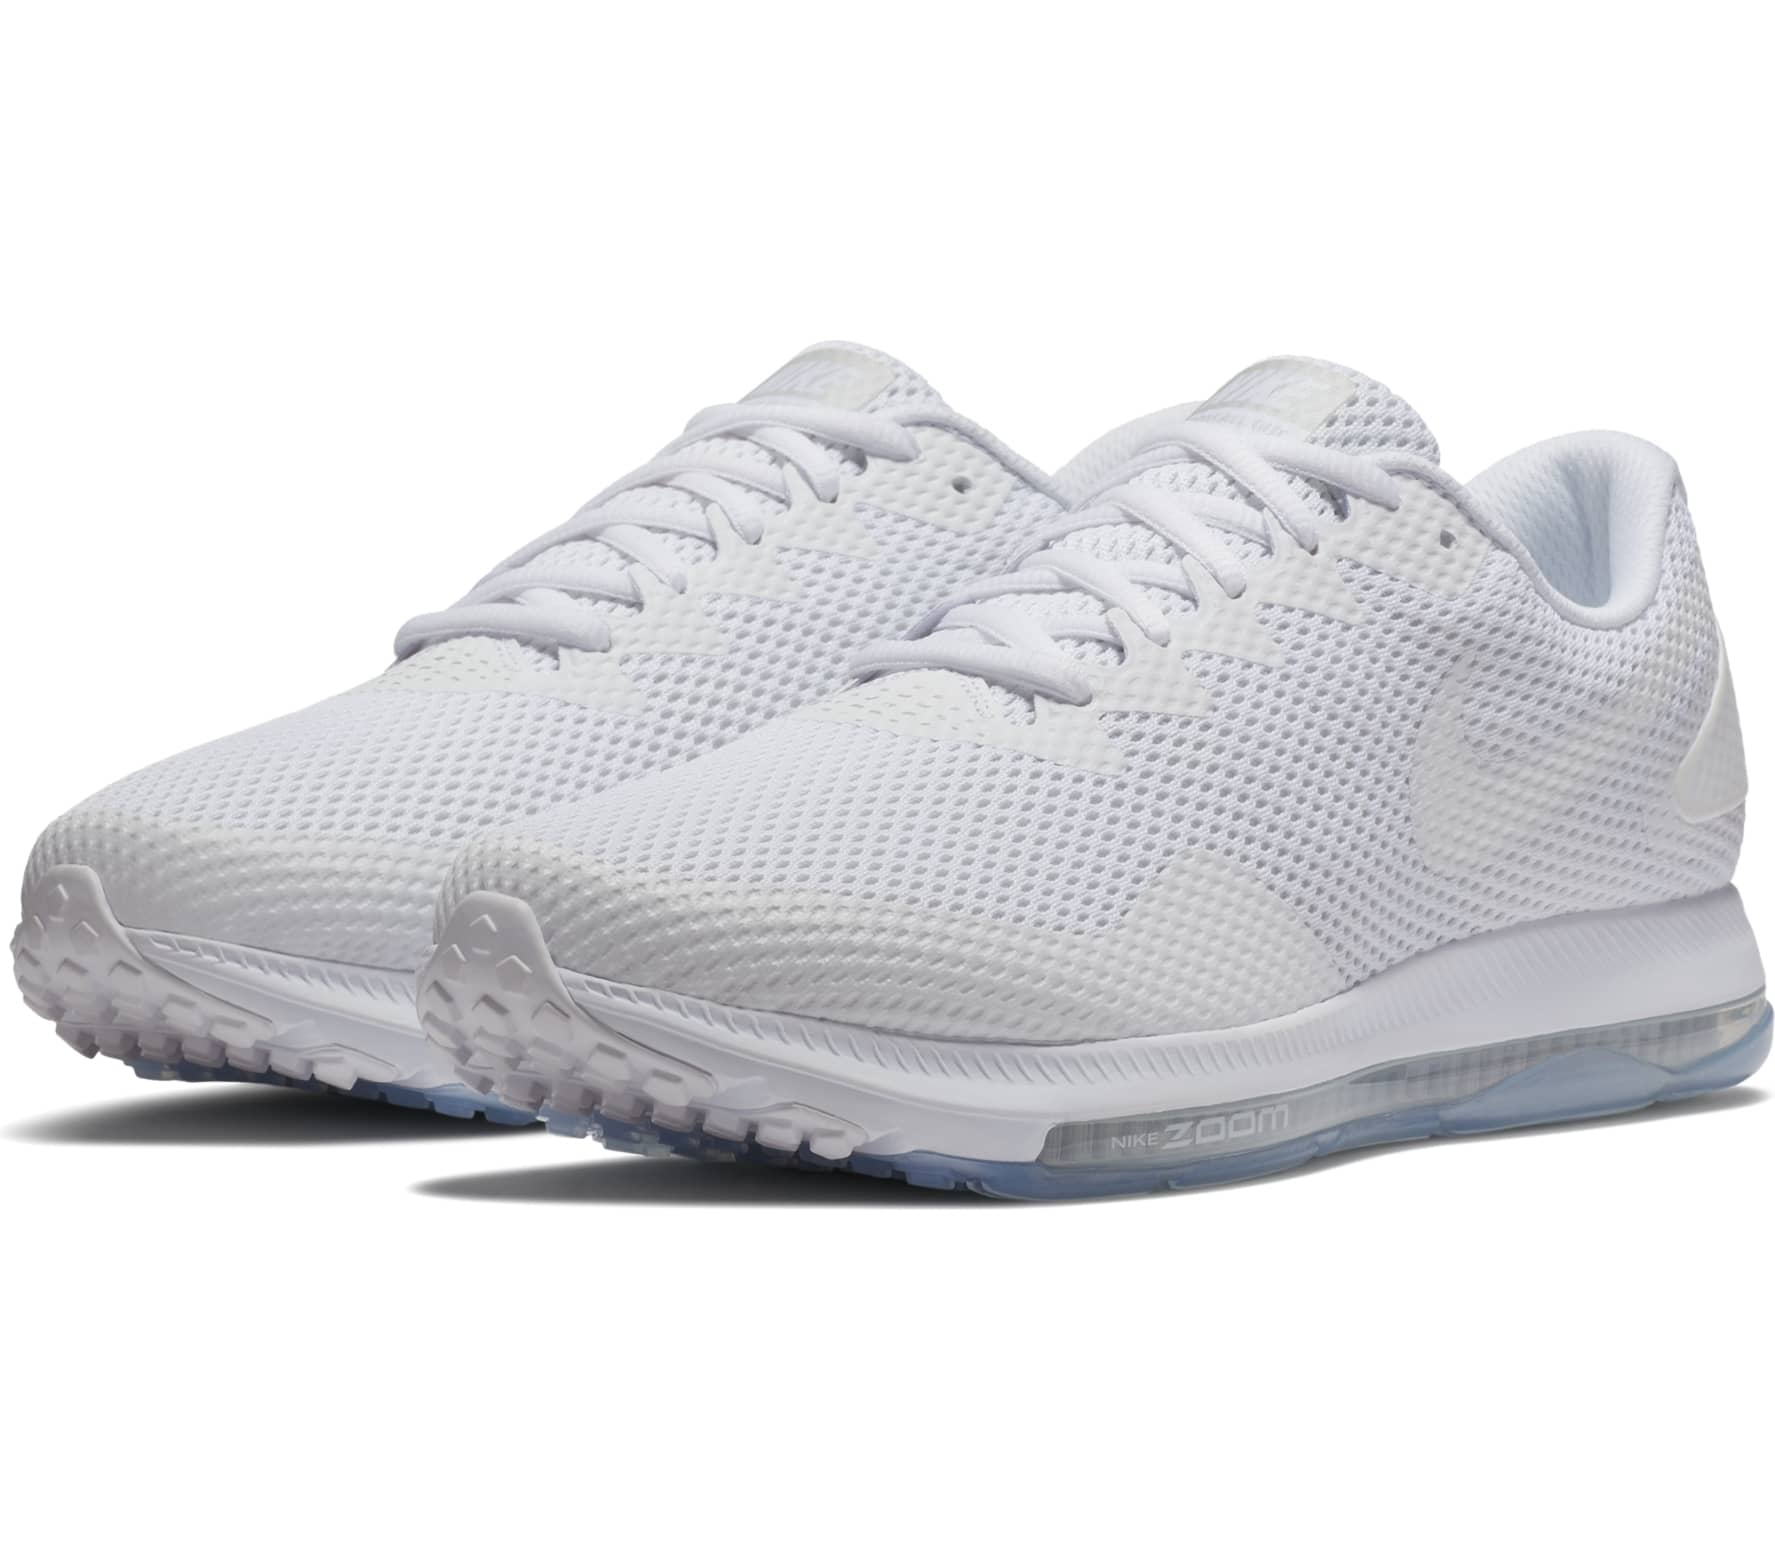 Nike Zoom All Low Out Low All 2 Hommes chaussure de course blanc acheter 5ccf70